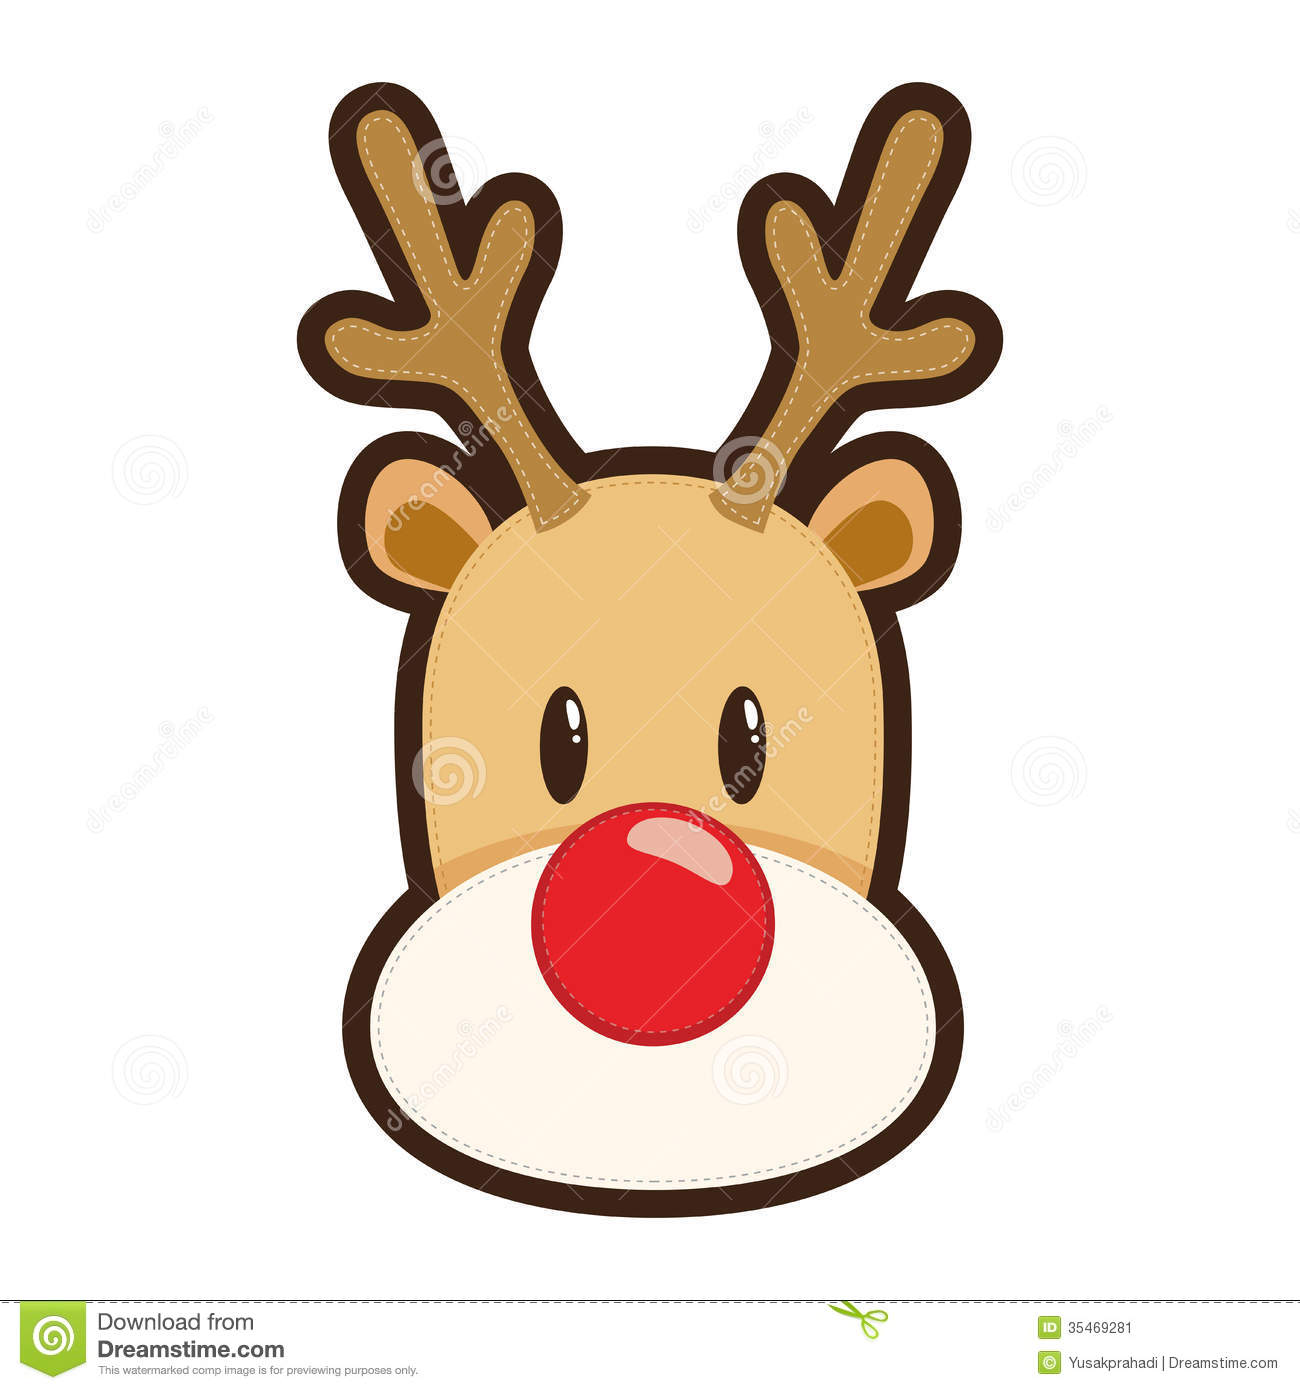 Cartoon rudolph the red nosed reindeer white clipart.